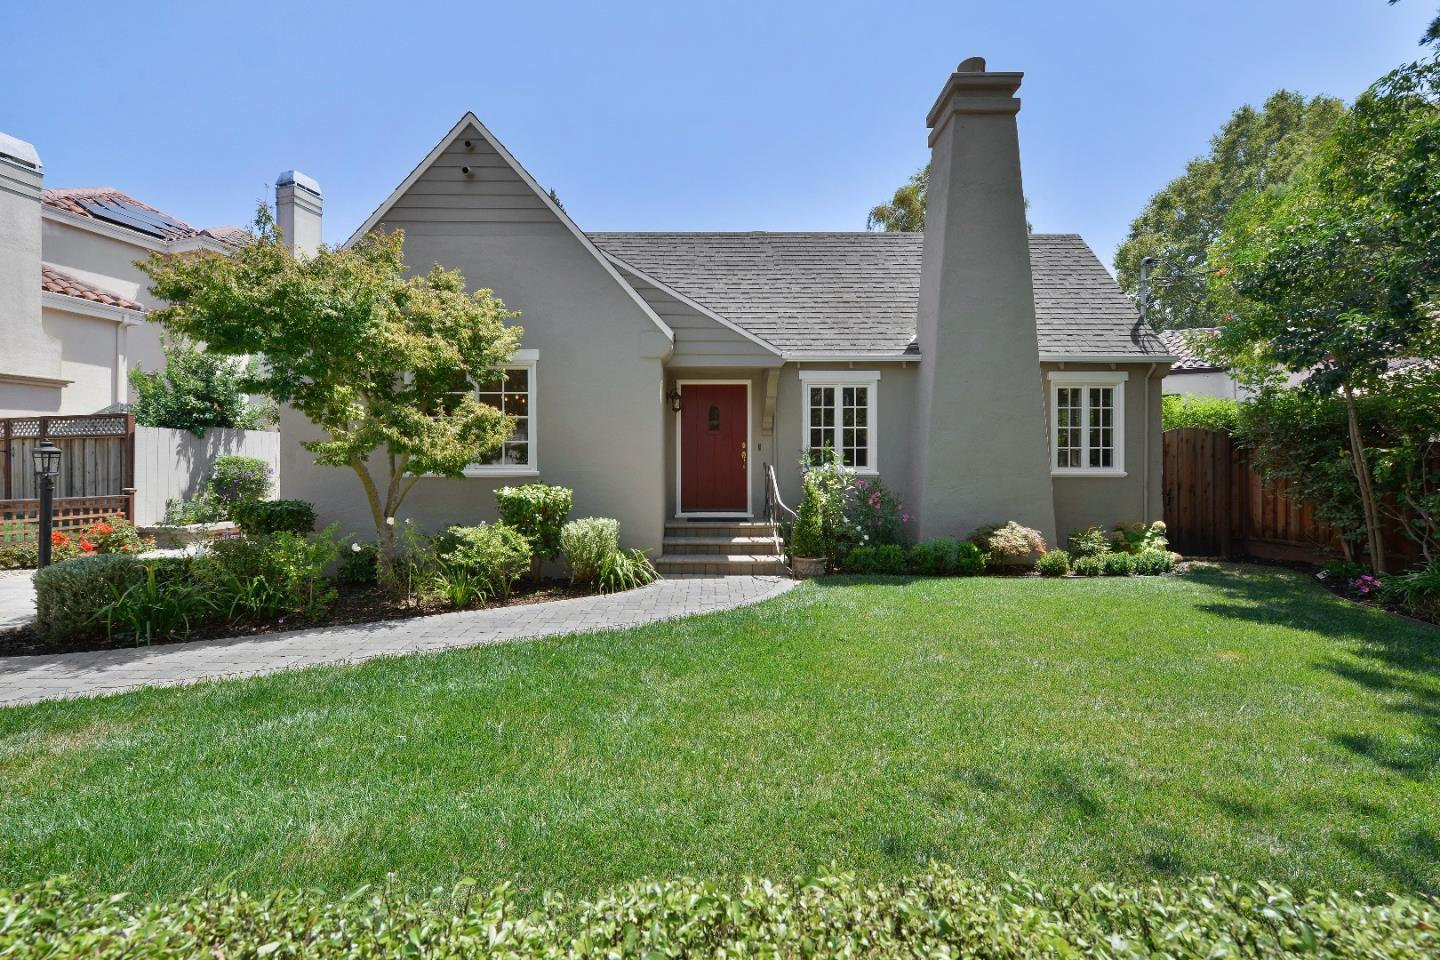 Single Family Home for Sale at 181 Warren Road San Mateo, California 94401 United States